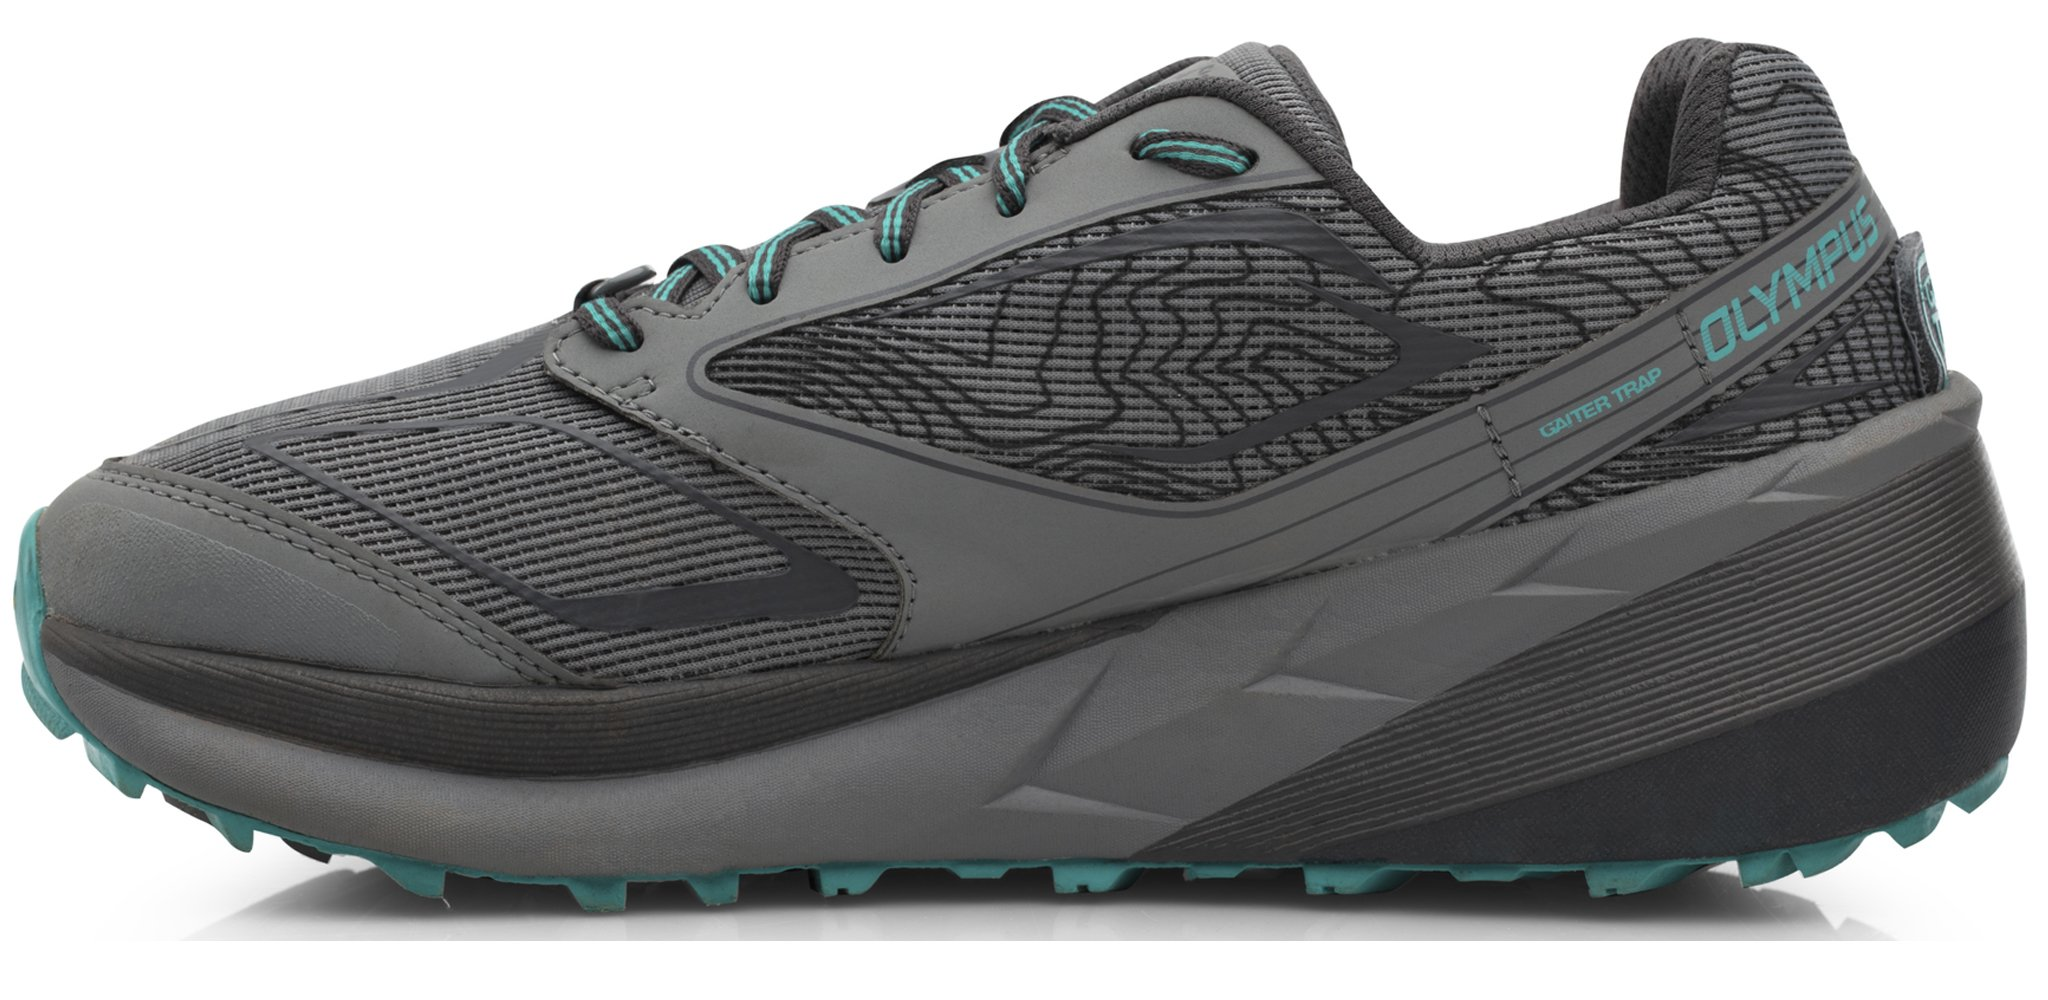 Altra AFW1859F Women's Olympus 3 Trail Running Shoe, Gray/Teal - 10.5 B(M) US by Altra (Image #2)